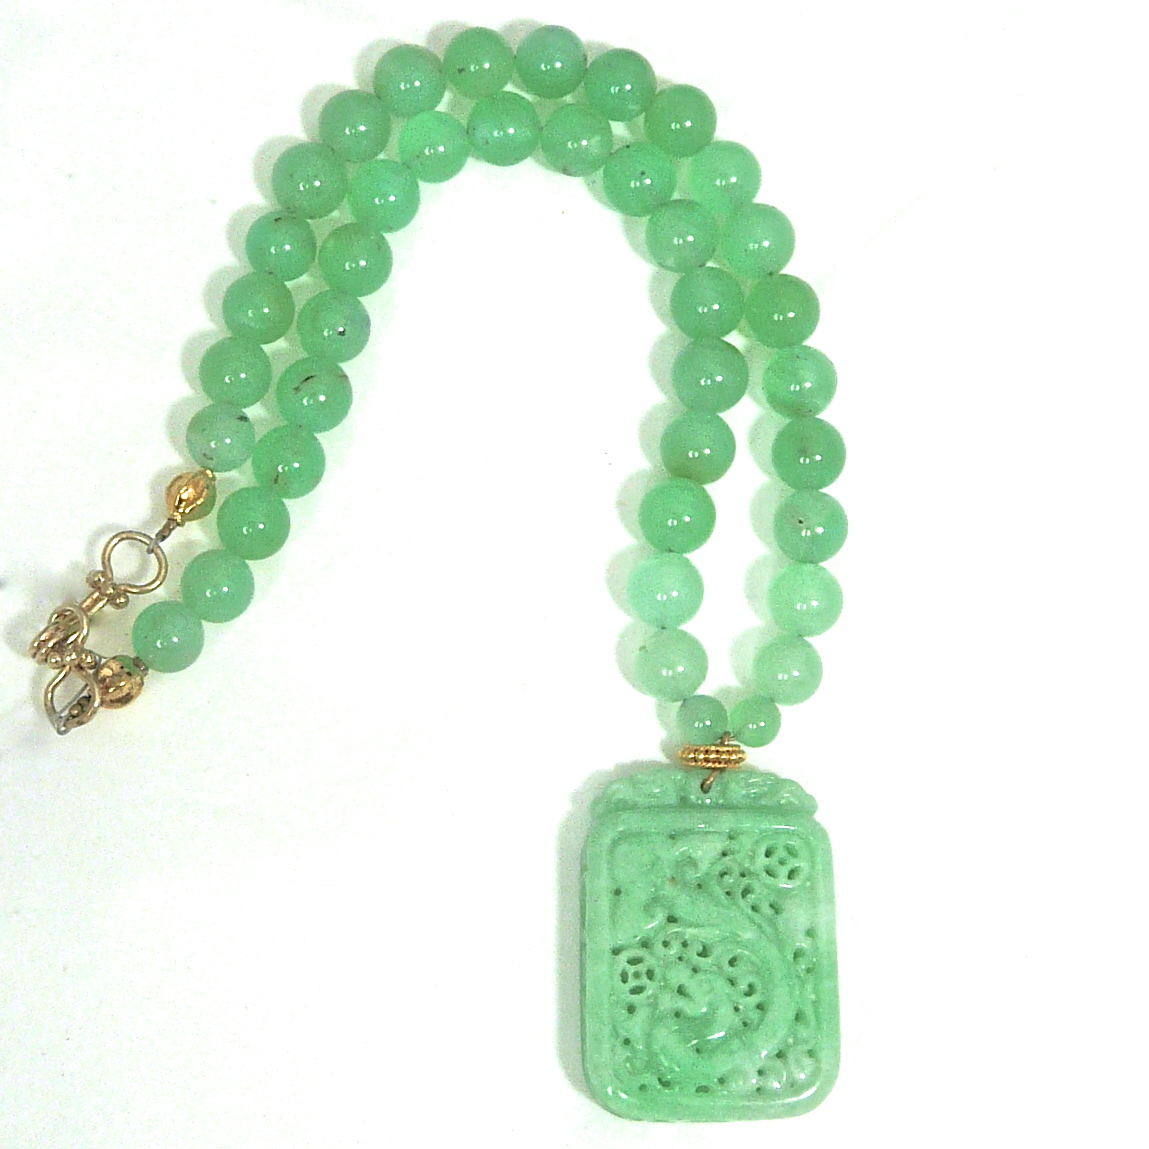 C3512 3 green jade dragons chrysoprase necklace